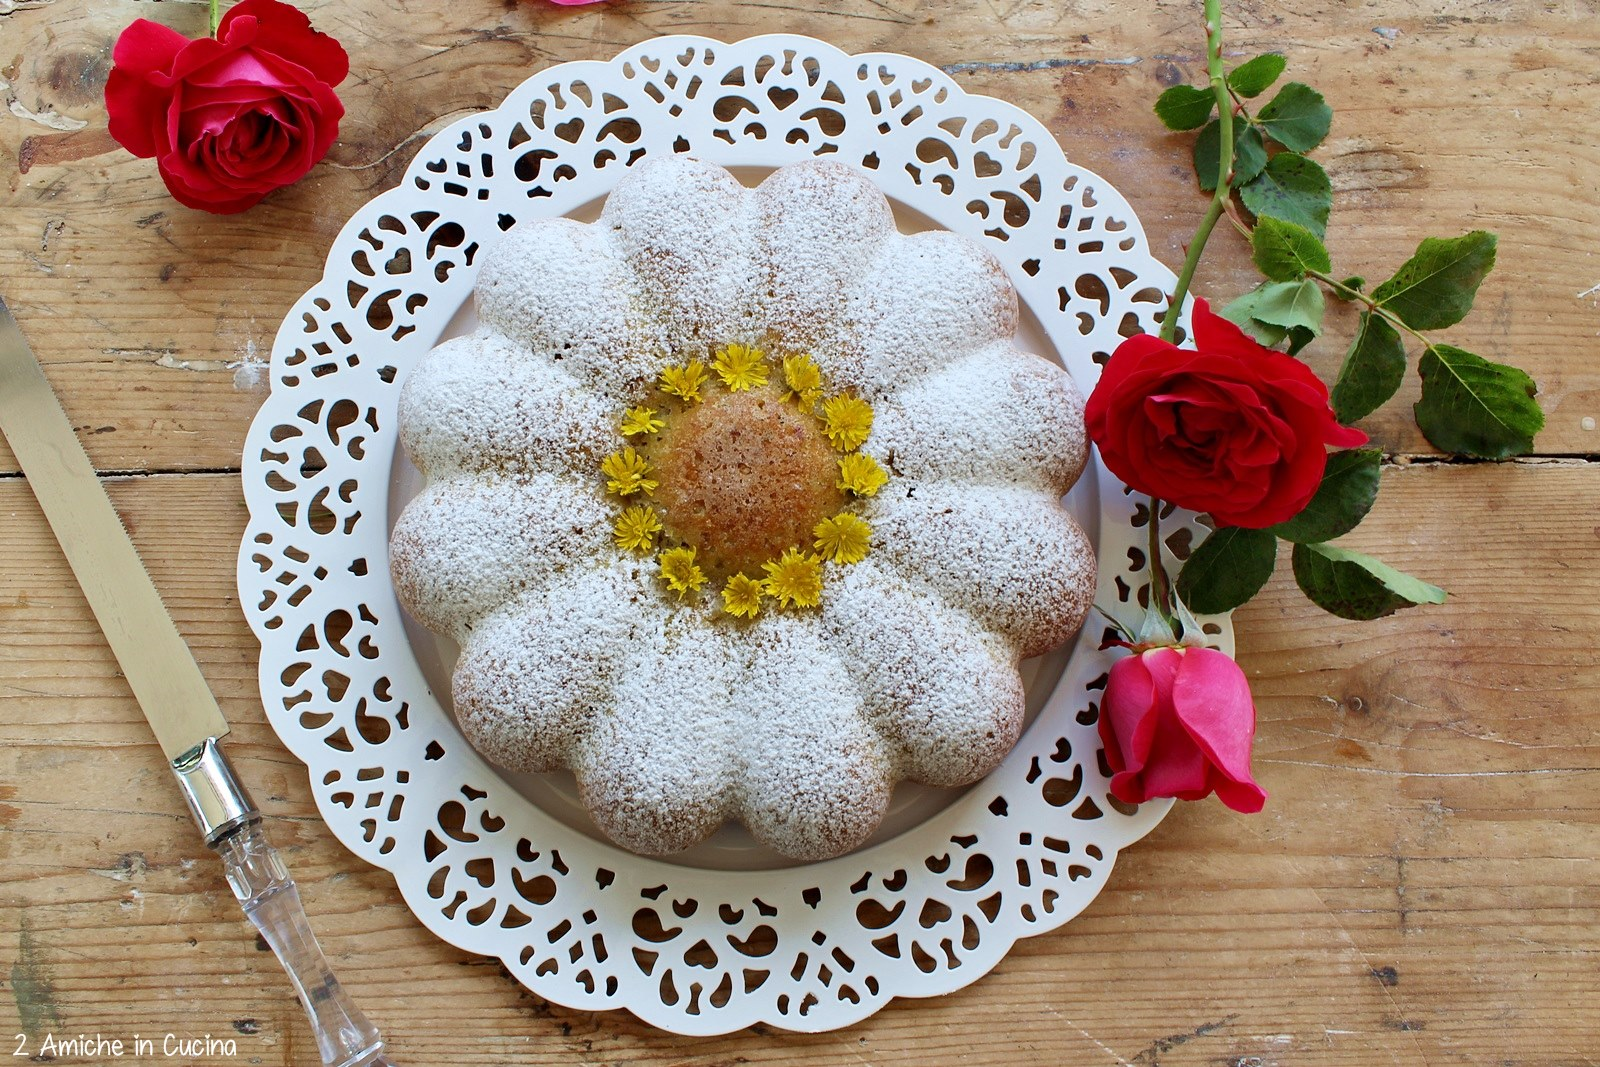 Torta margherita alle rose 1